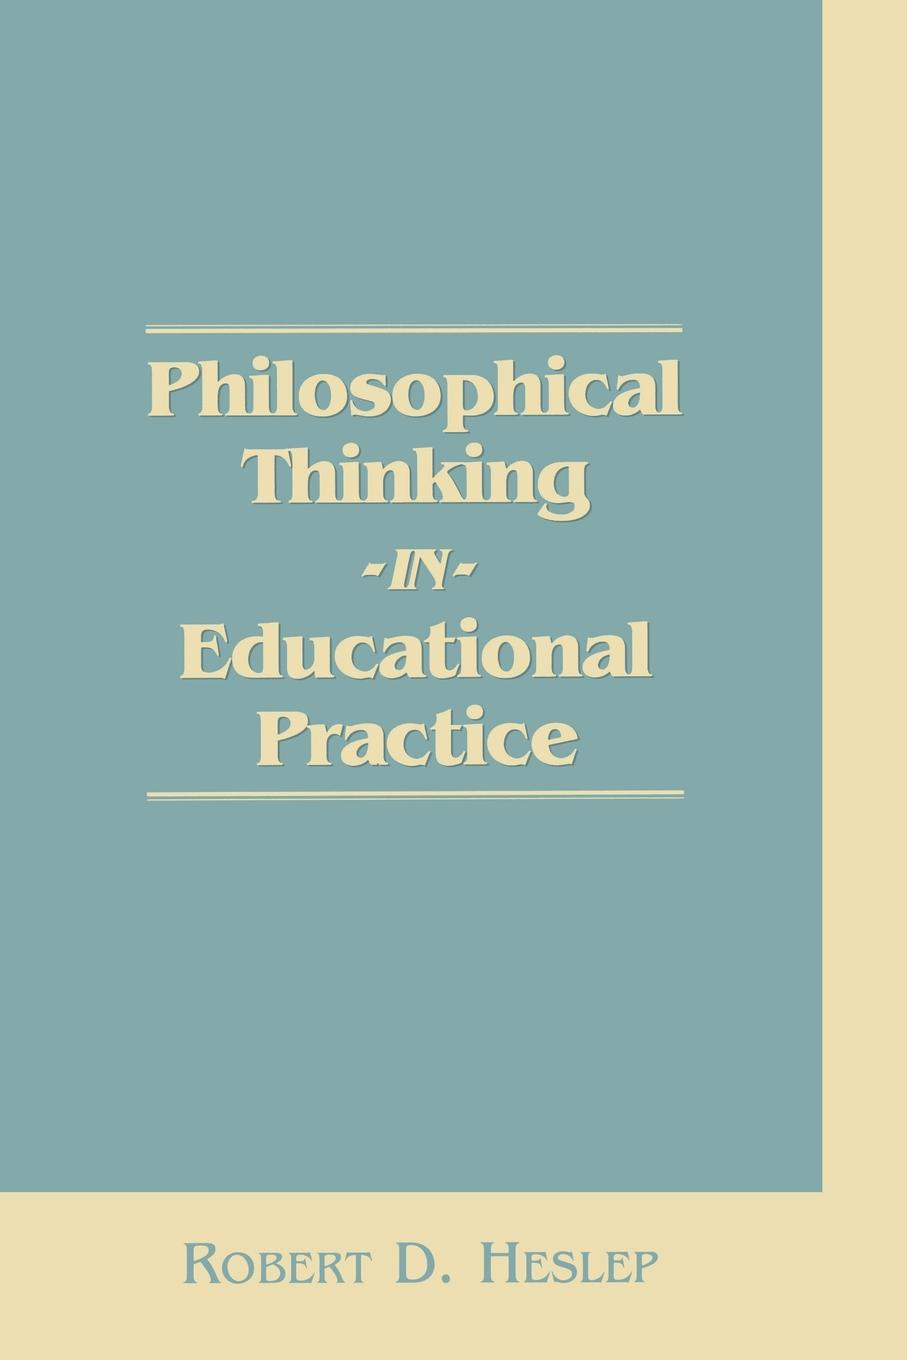 Robert D. Heslep, Unknown Philosophical Thinking in Educational Practice